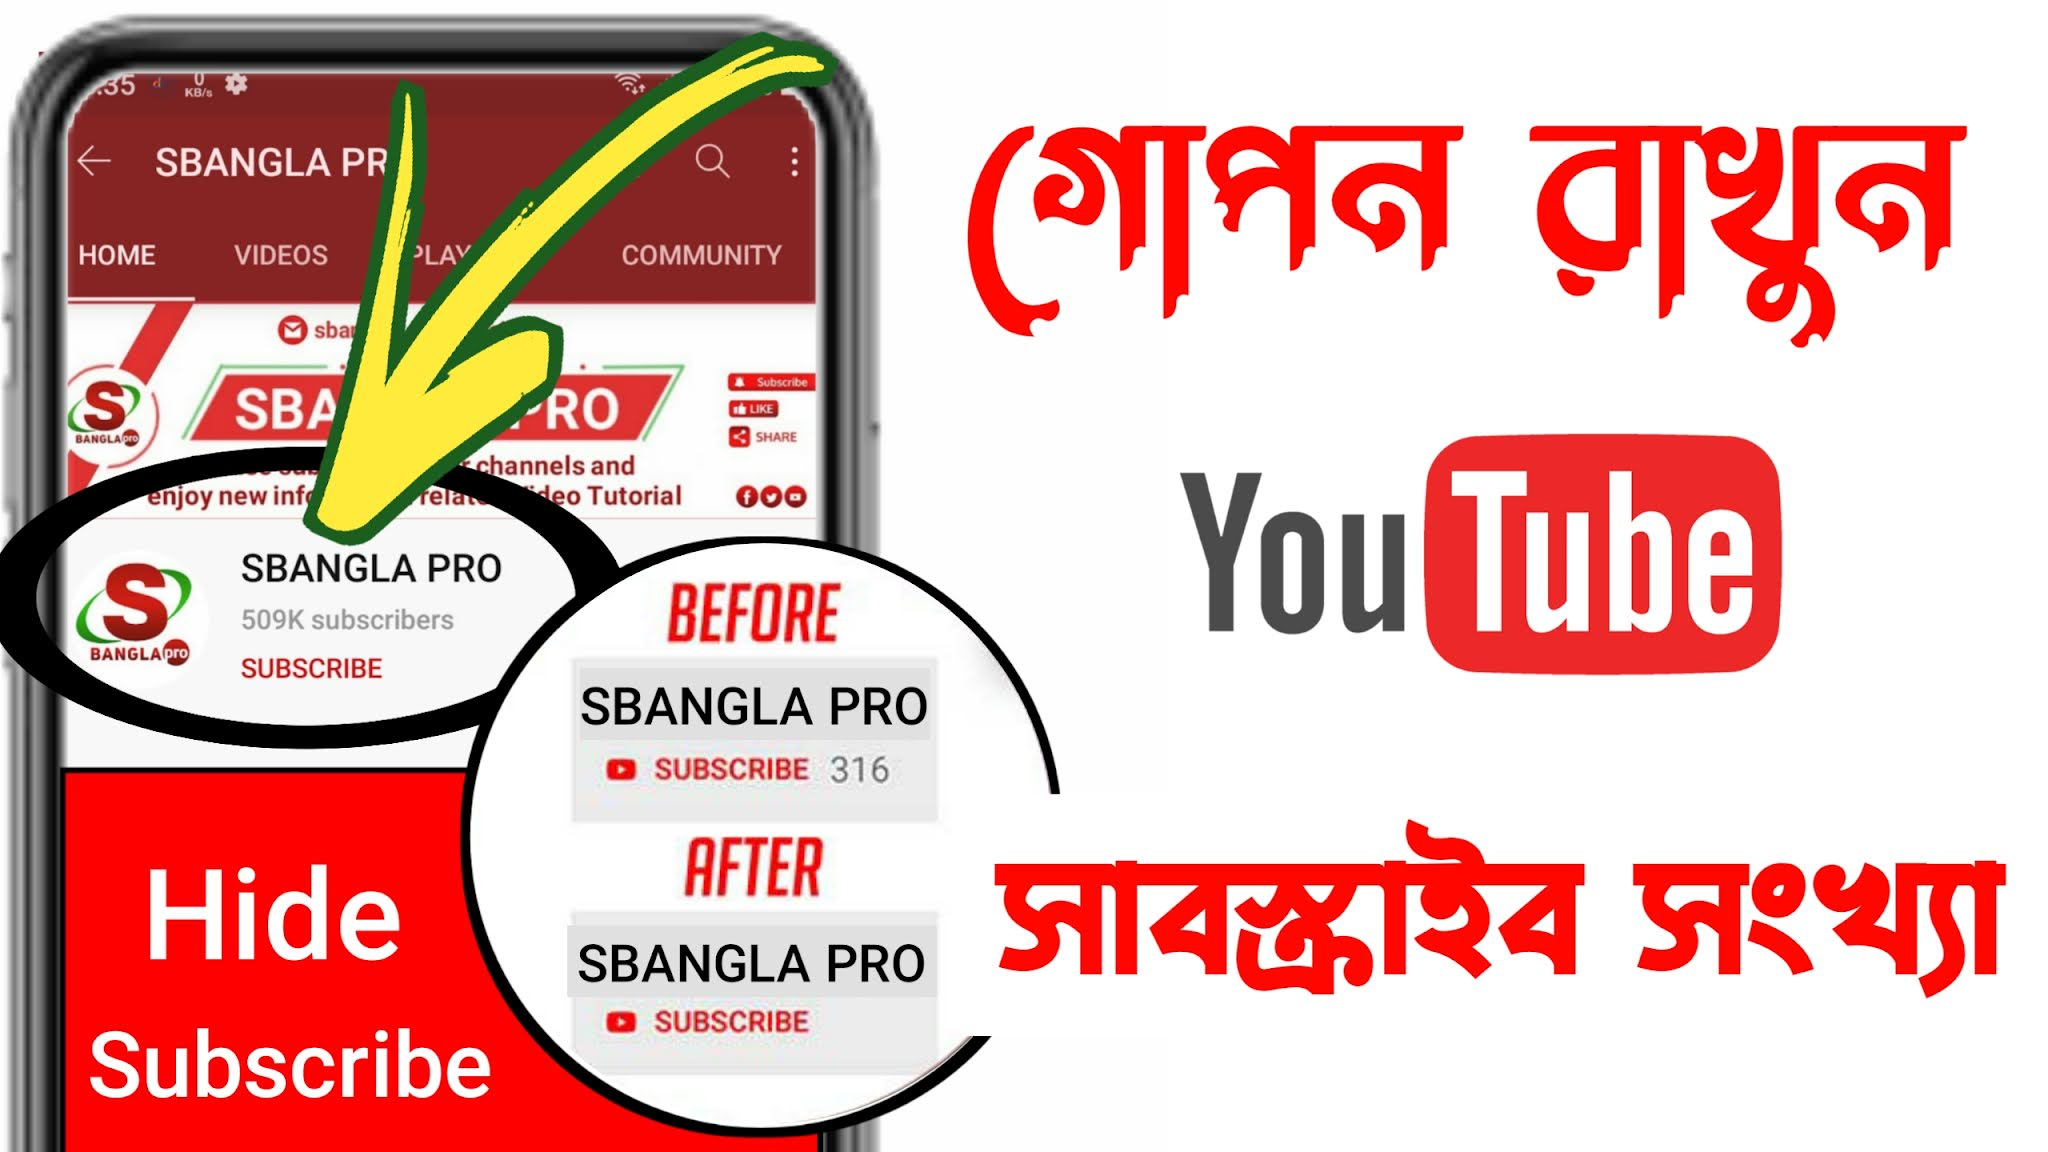 How To Hide Subscribers On Youtube In Android Mobile Bangla 2021 !! Hide Youtube Channel Subs Count on Android